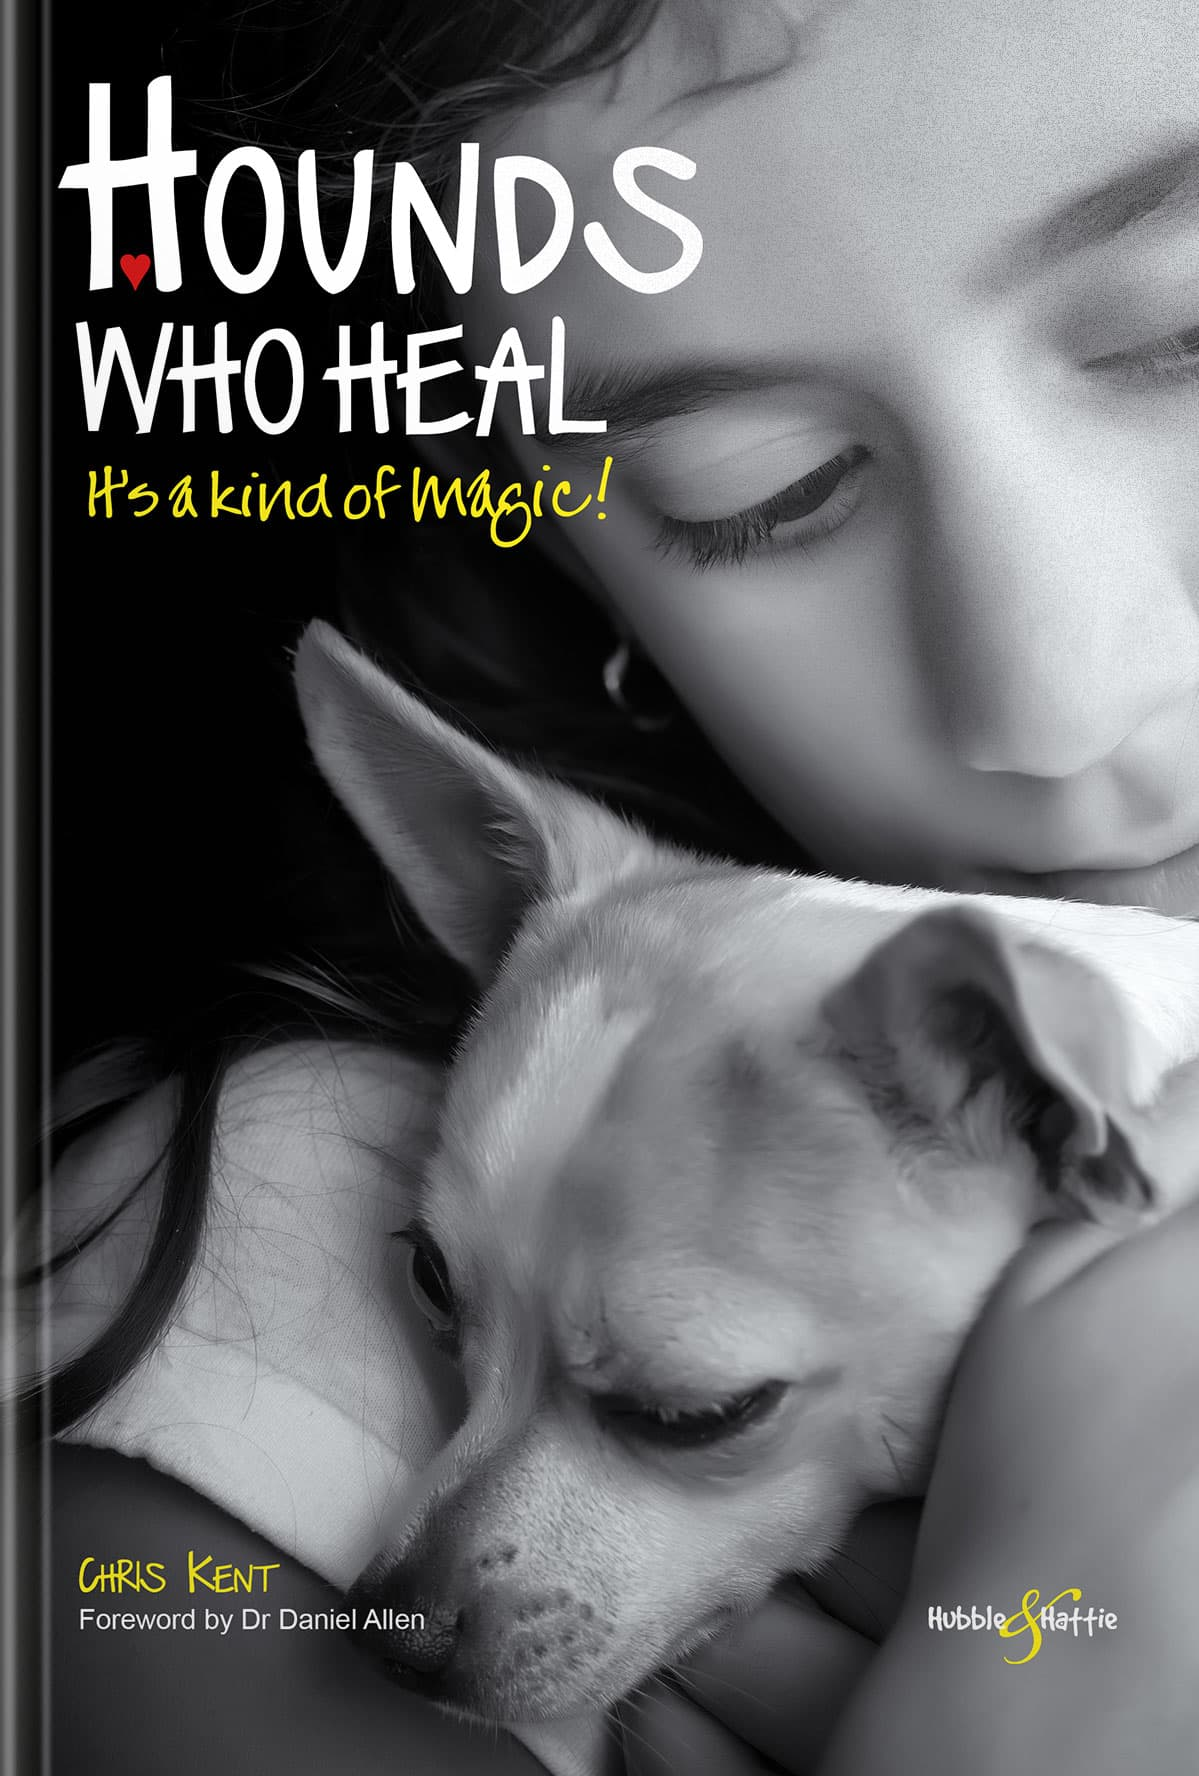 Hounds who heal – It